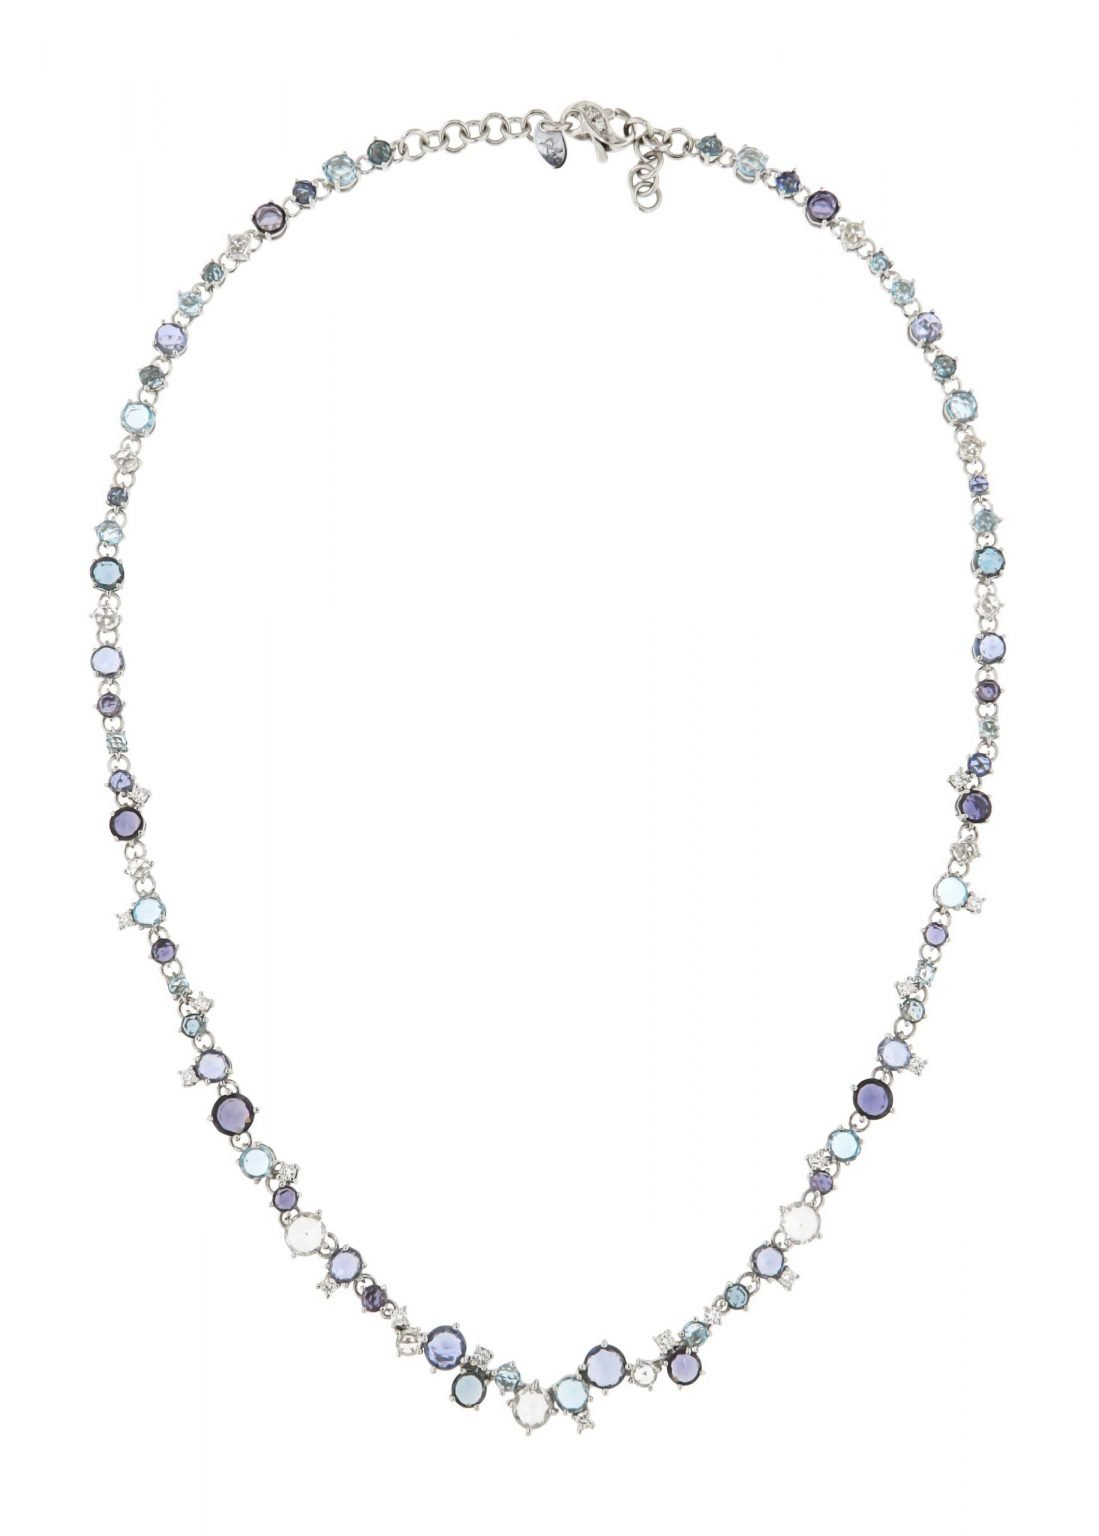 18 kt white gold necklace with blue and white sapphire, toapz and diamonds